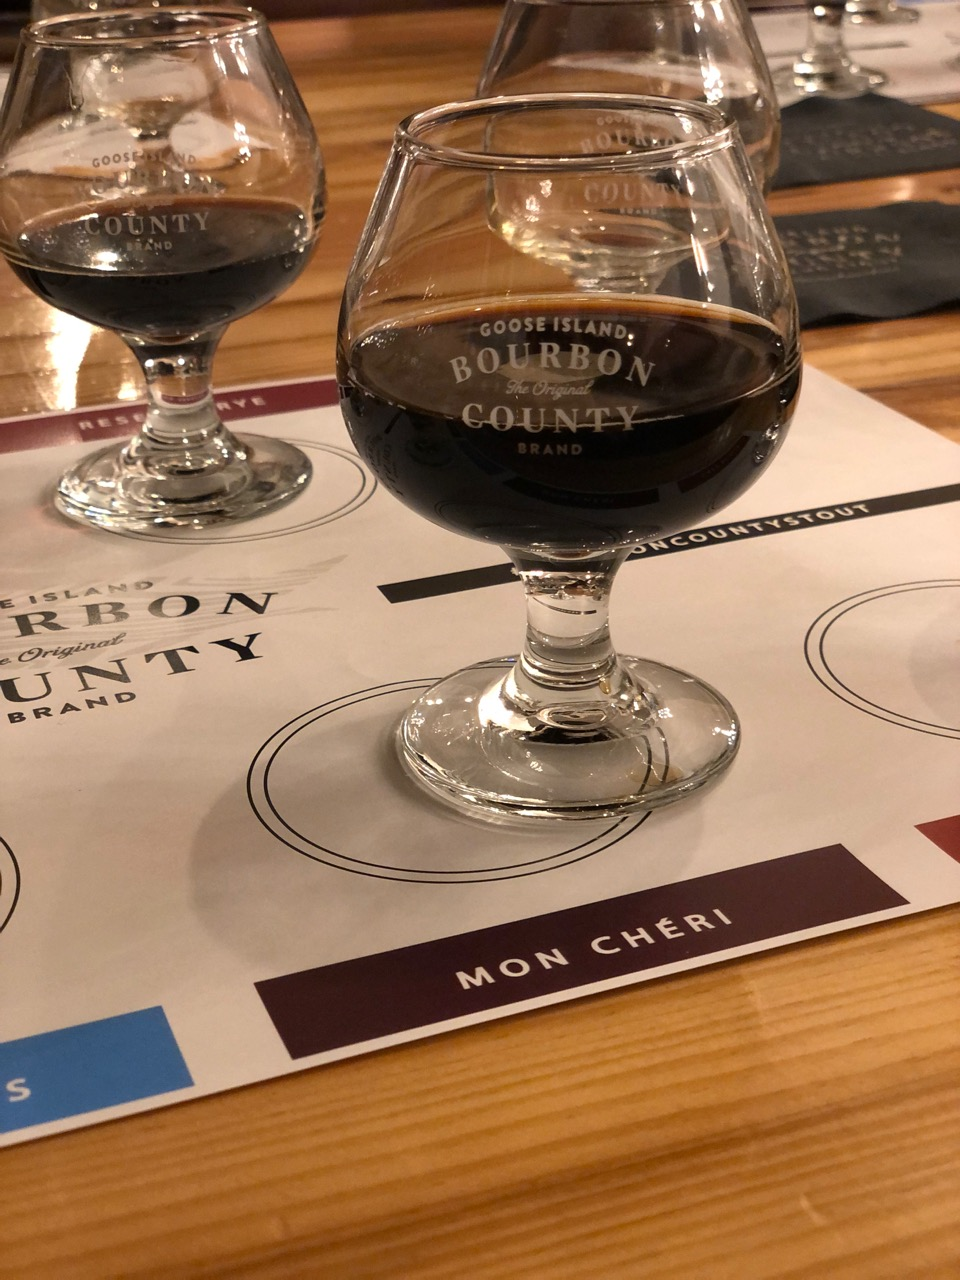 2019 Bourbon County Stout Mon Cheri